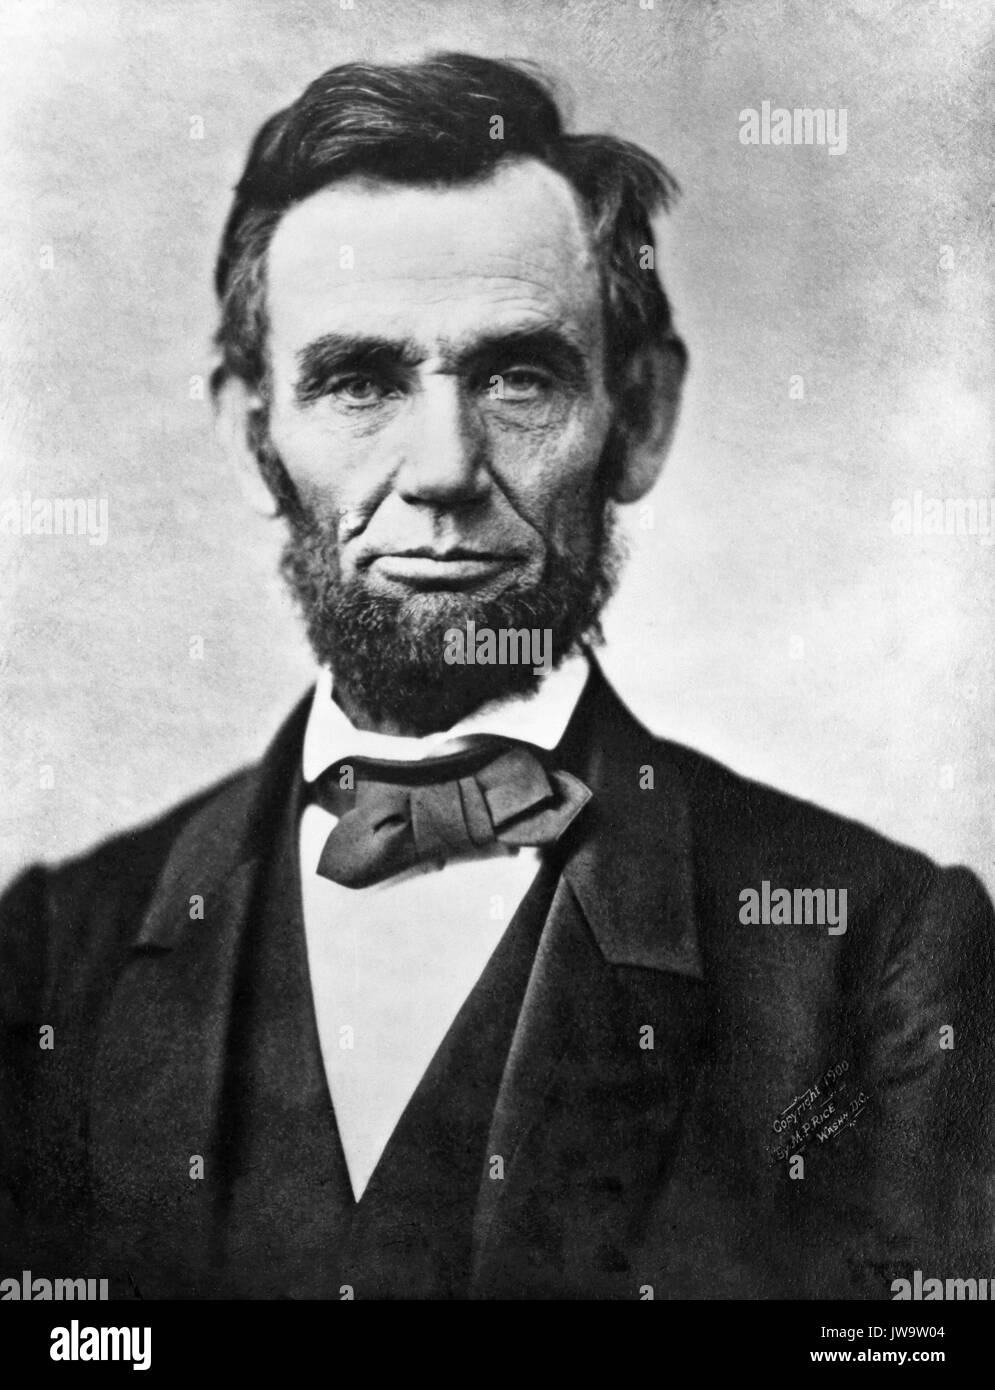 ABRHAM LINCOLN (1809-1865) American President photographed by Alexander Gardner on 8 November 1863 - Stock Image